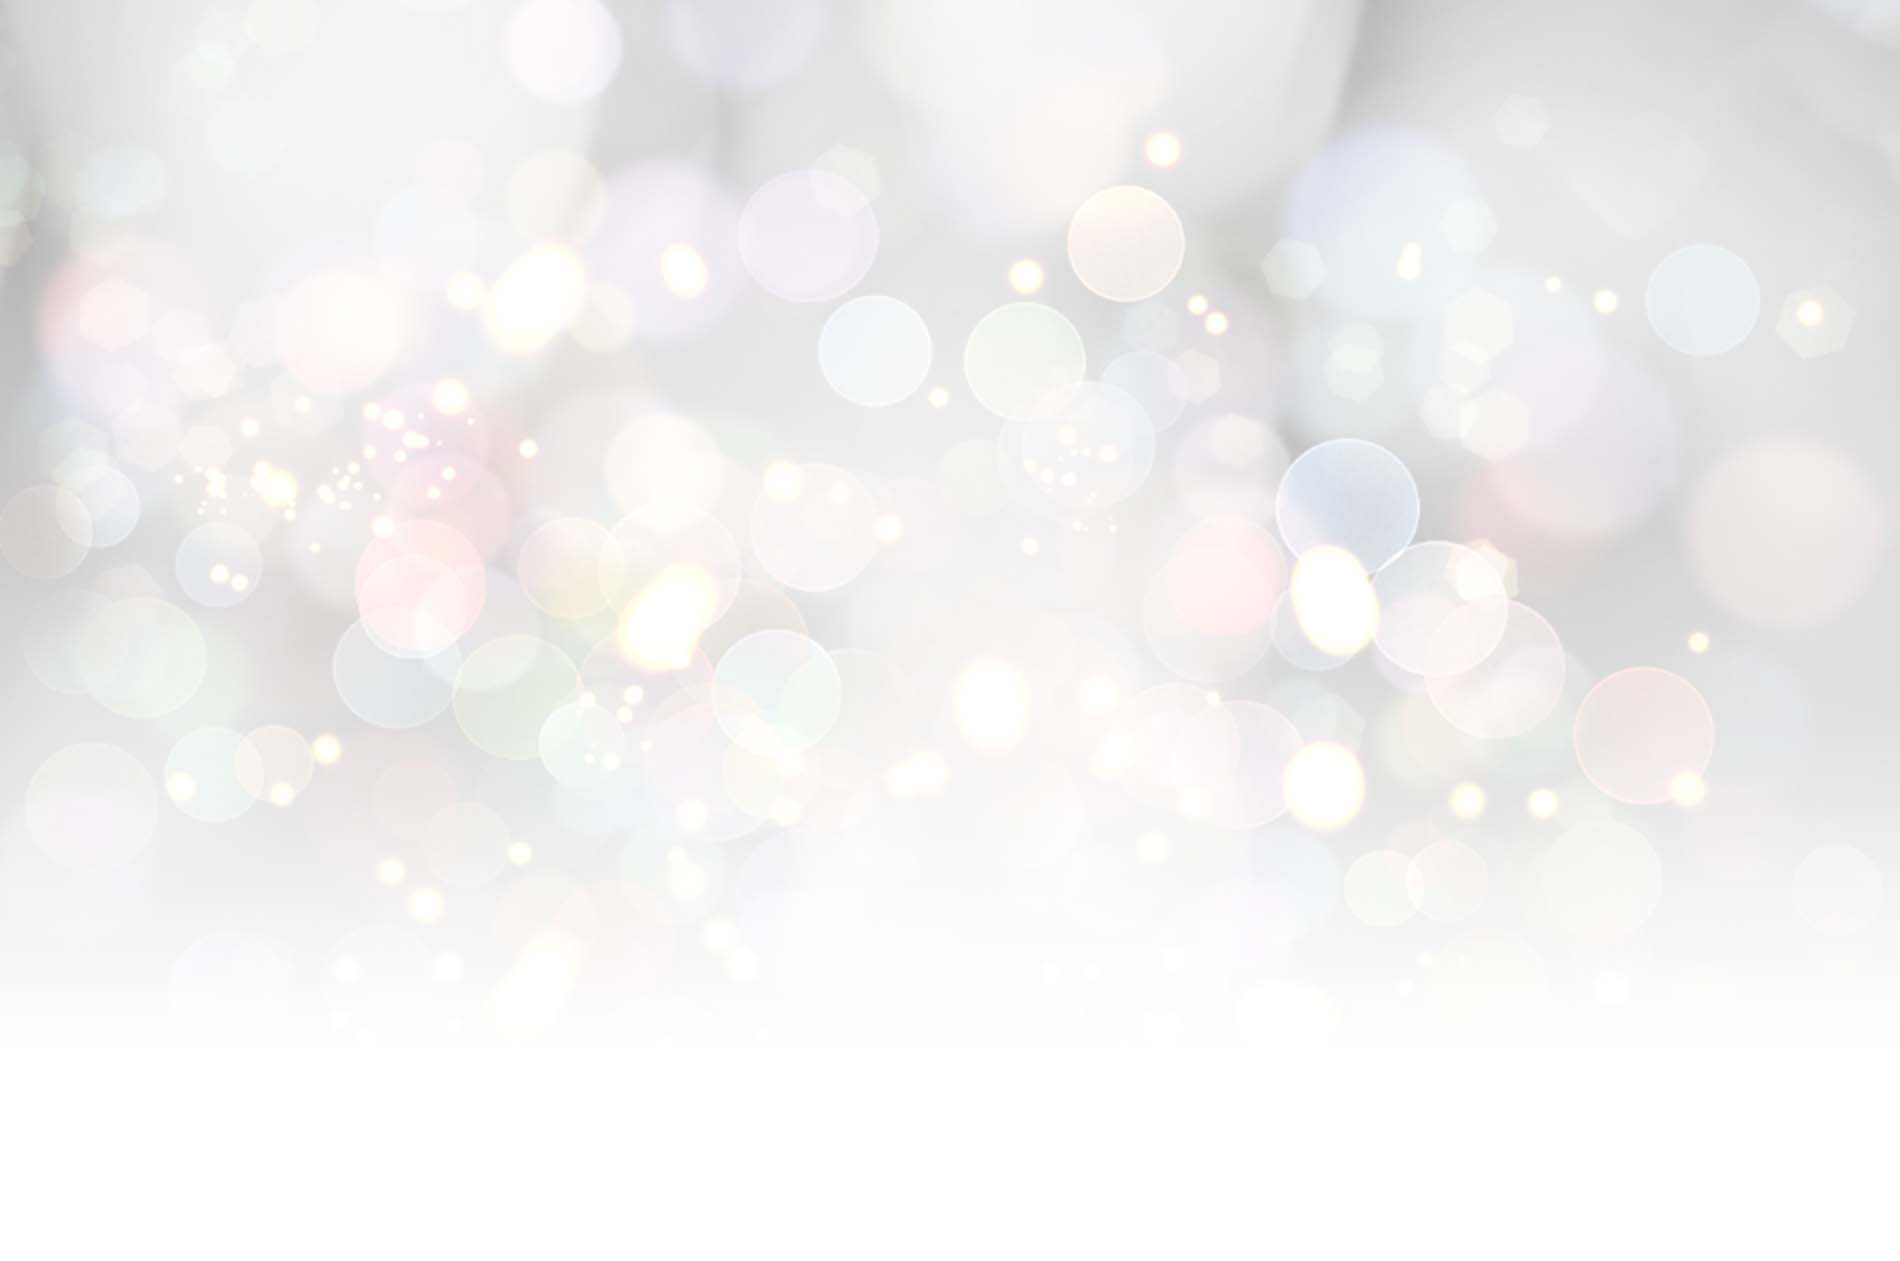 Filename: Bokeh-white1.jpg - Bokeh PNG